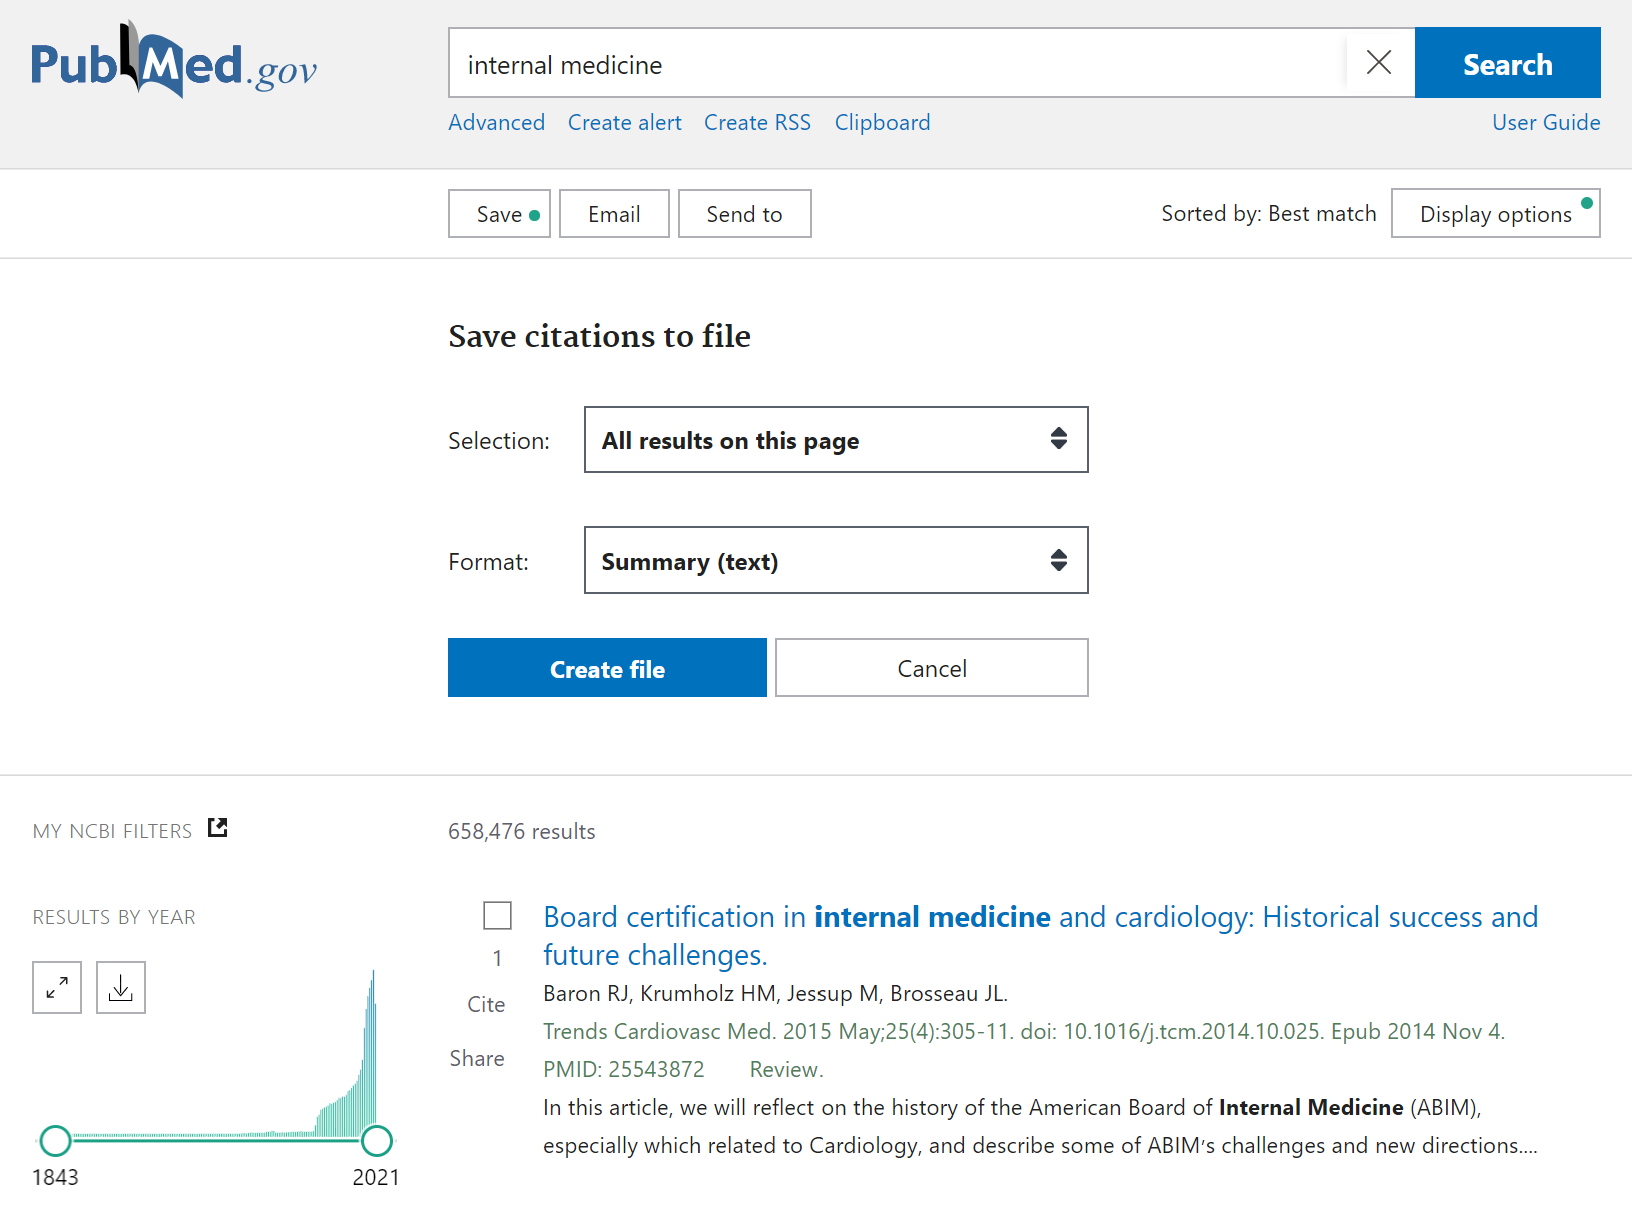 The Save citations to file option in PubMed